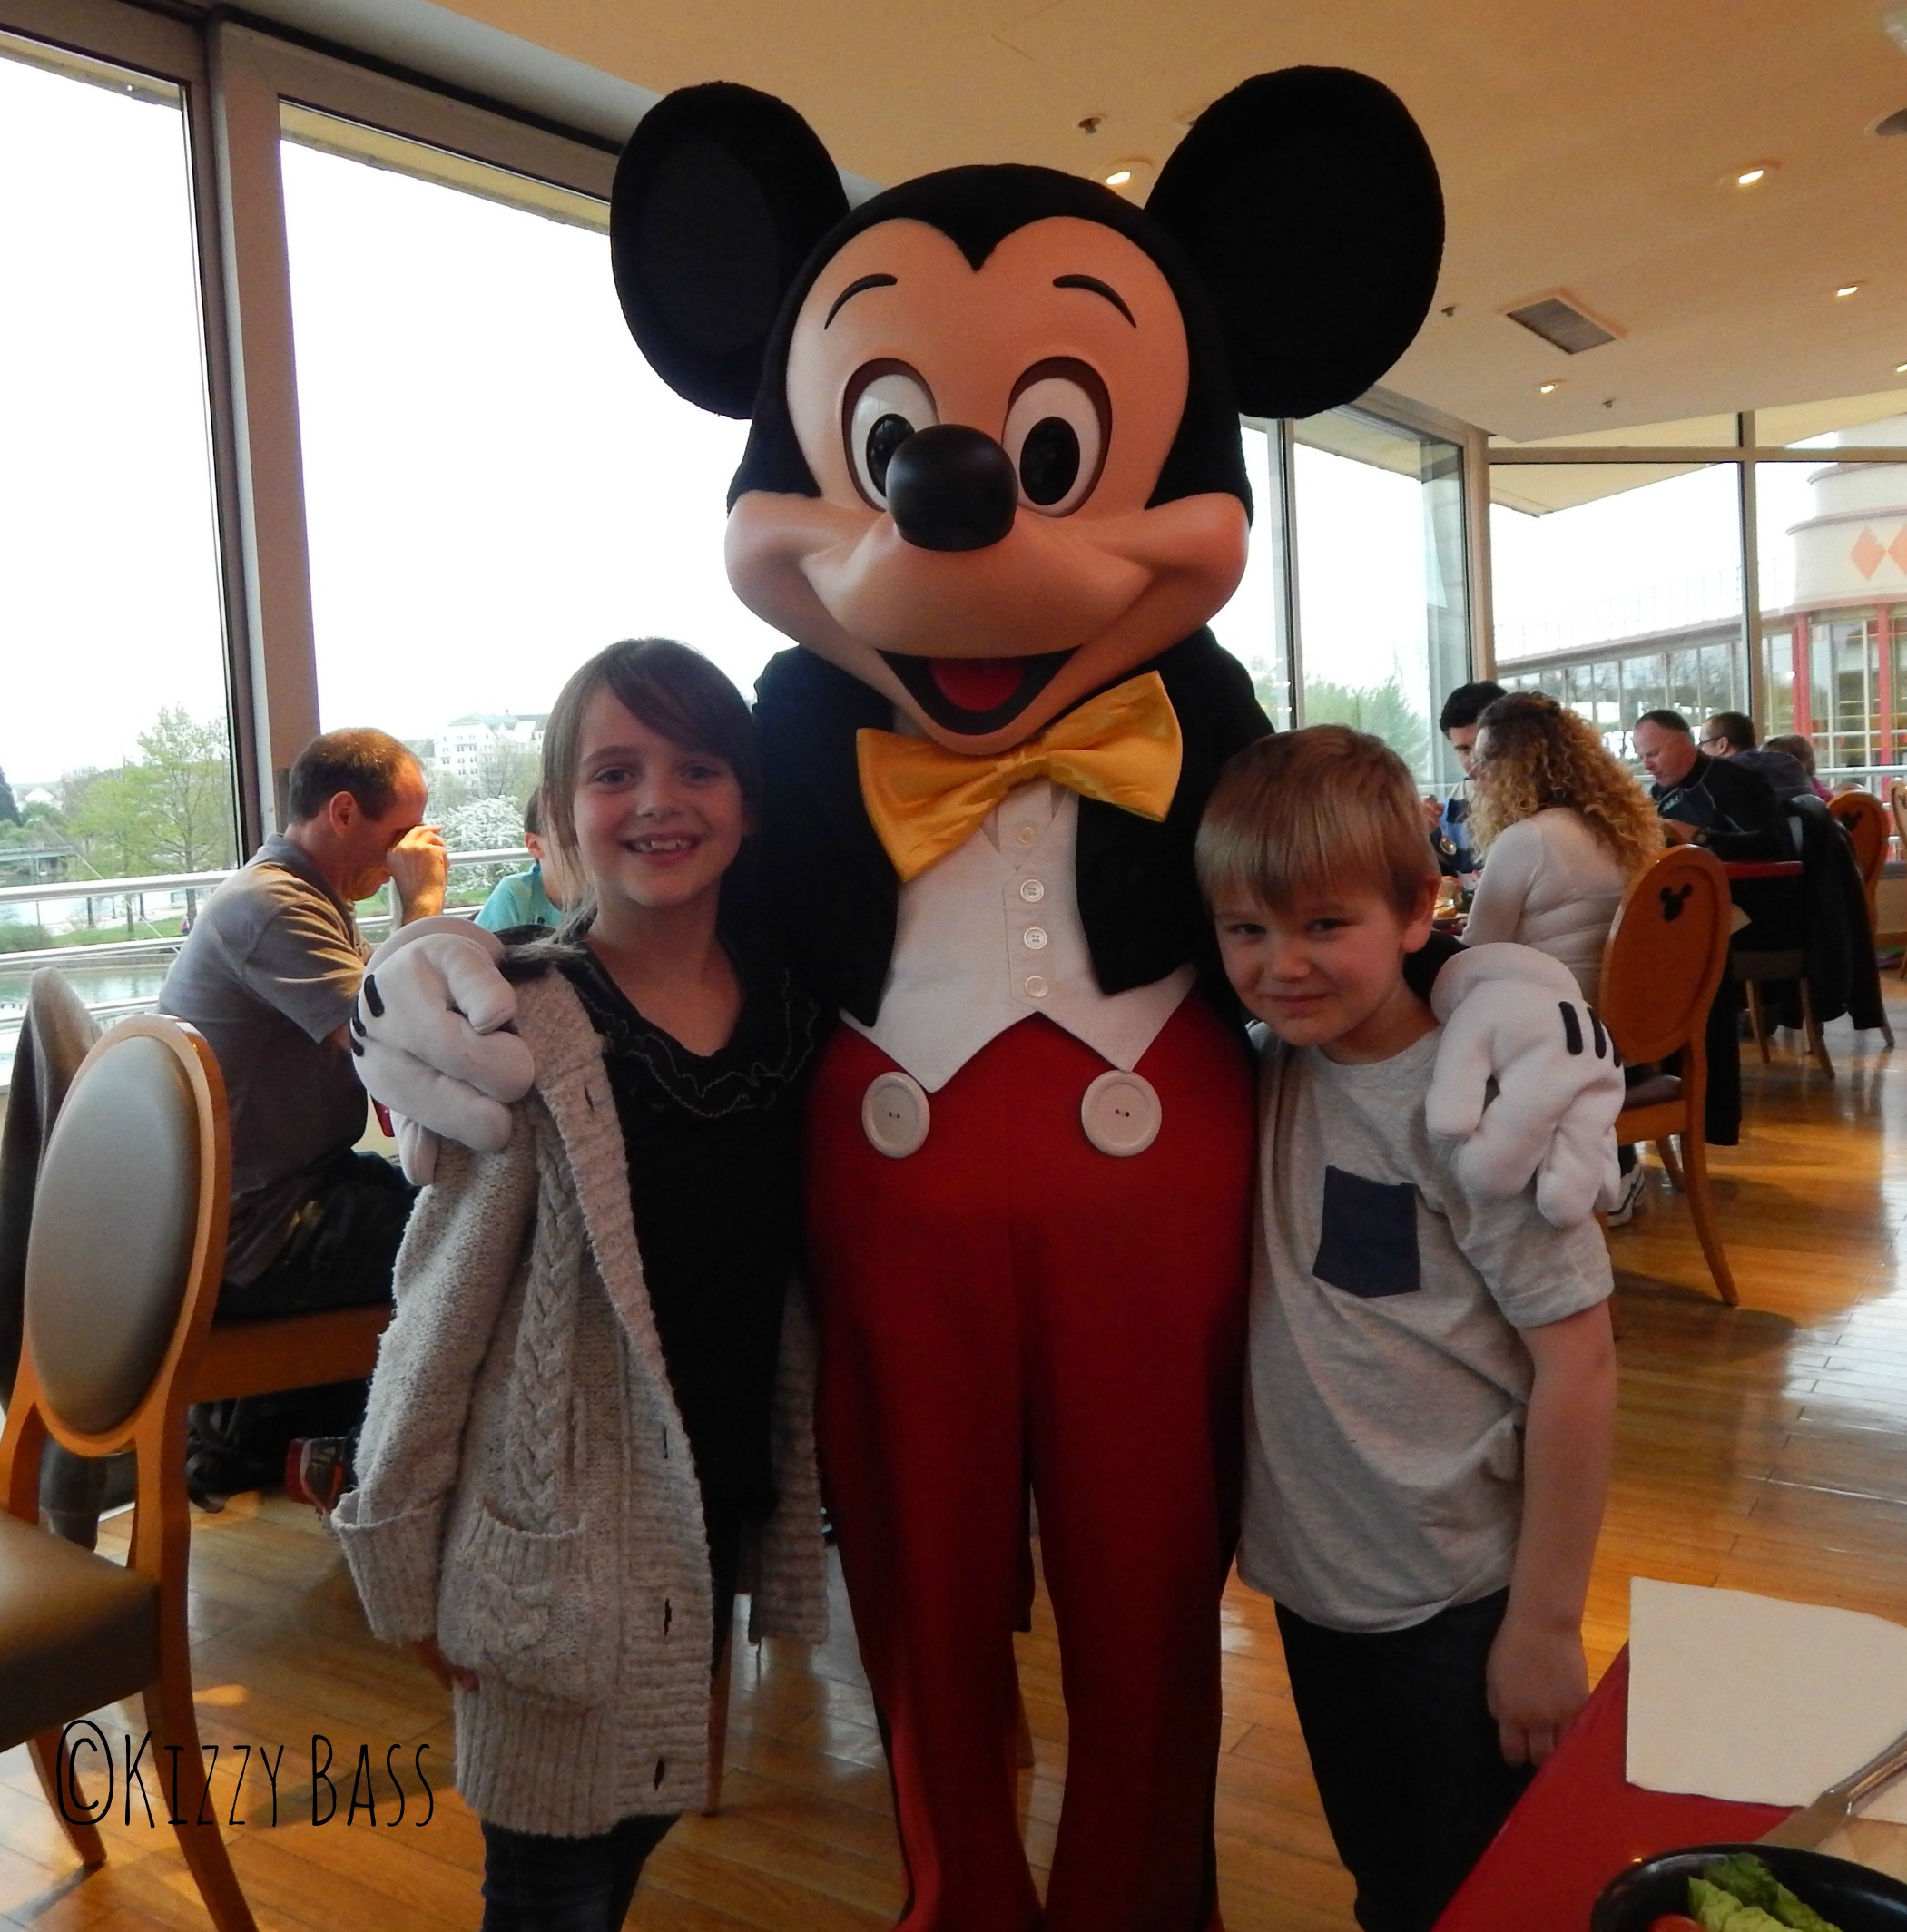 Dinner with Mickey #magicmoments #whatsthestory